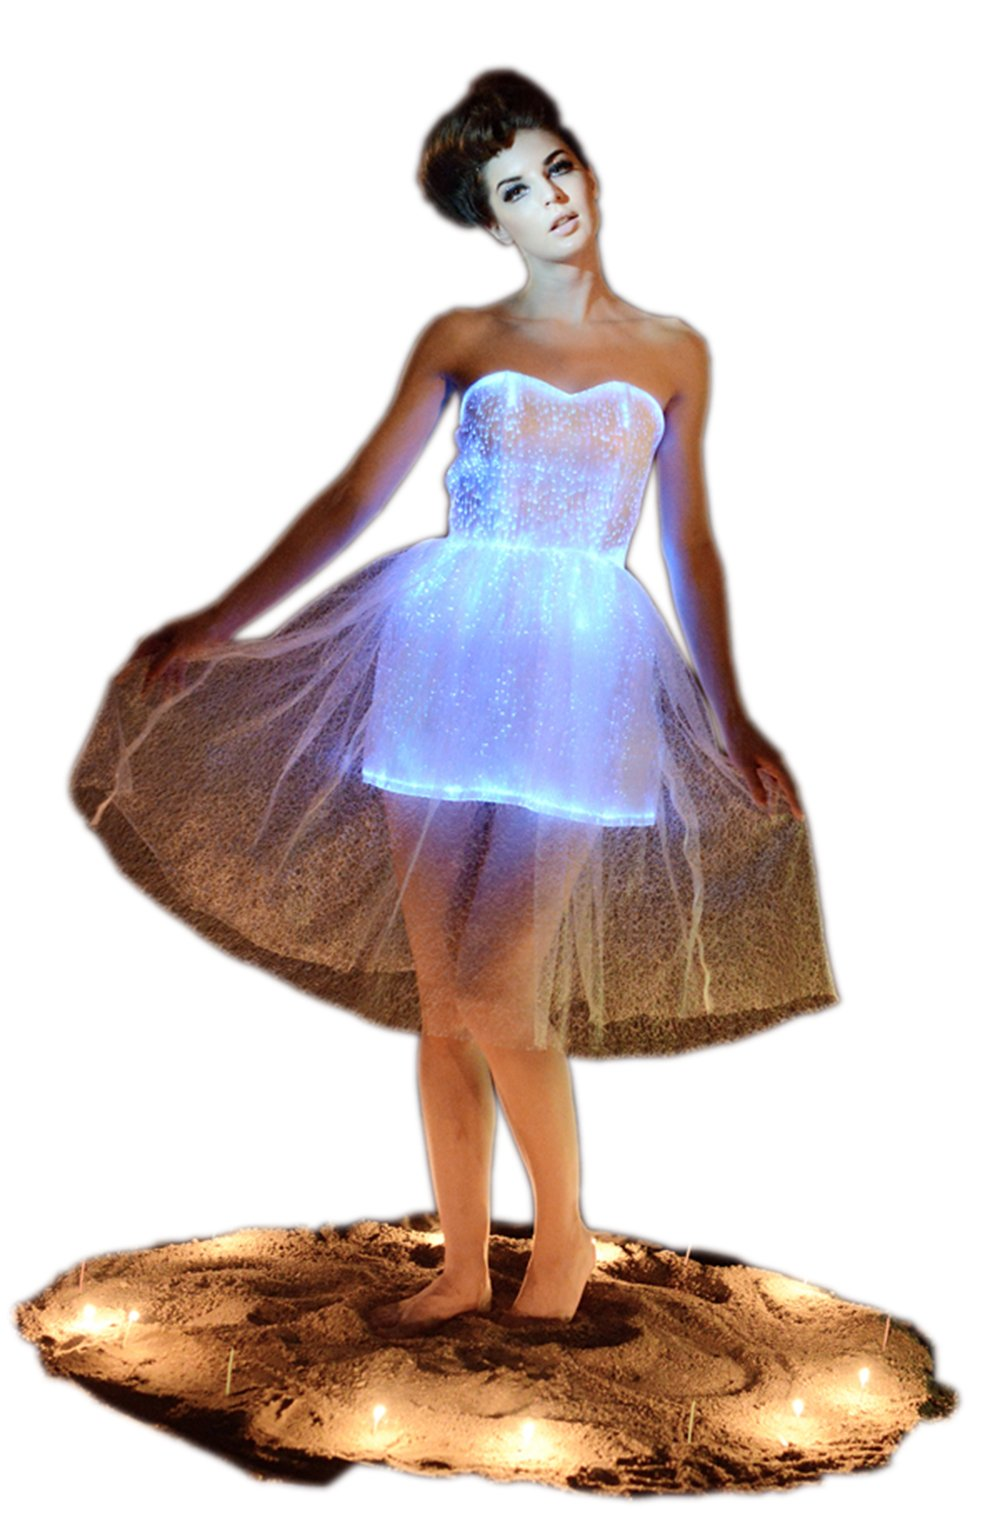 Fiber Optic Strapless Wedding Bridesmaid Lace Dress Glow In The Dark Backless Party Dress Dance Wear (L, White)